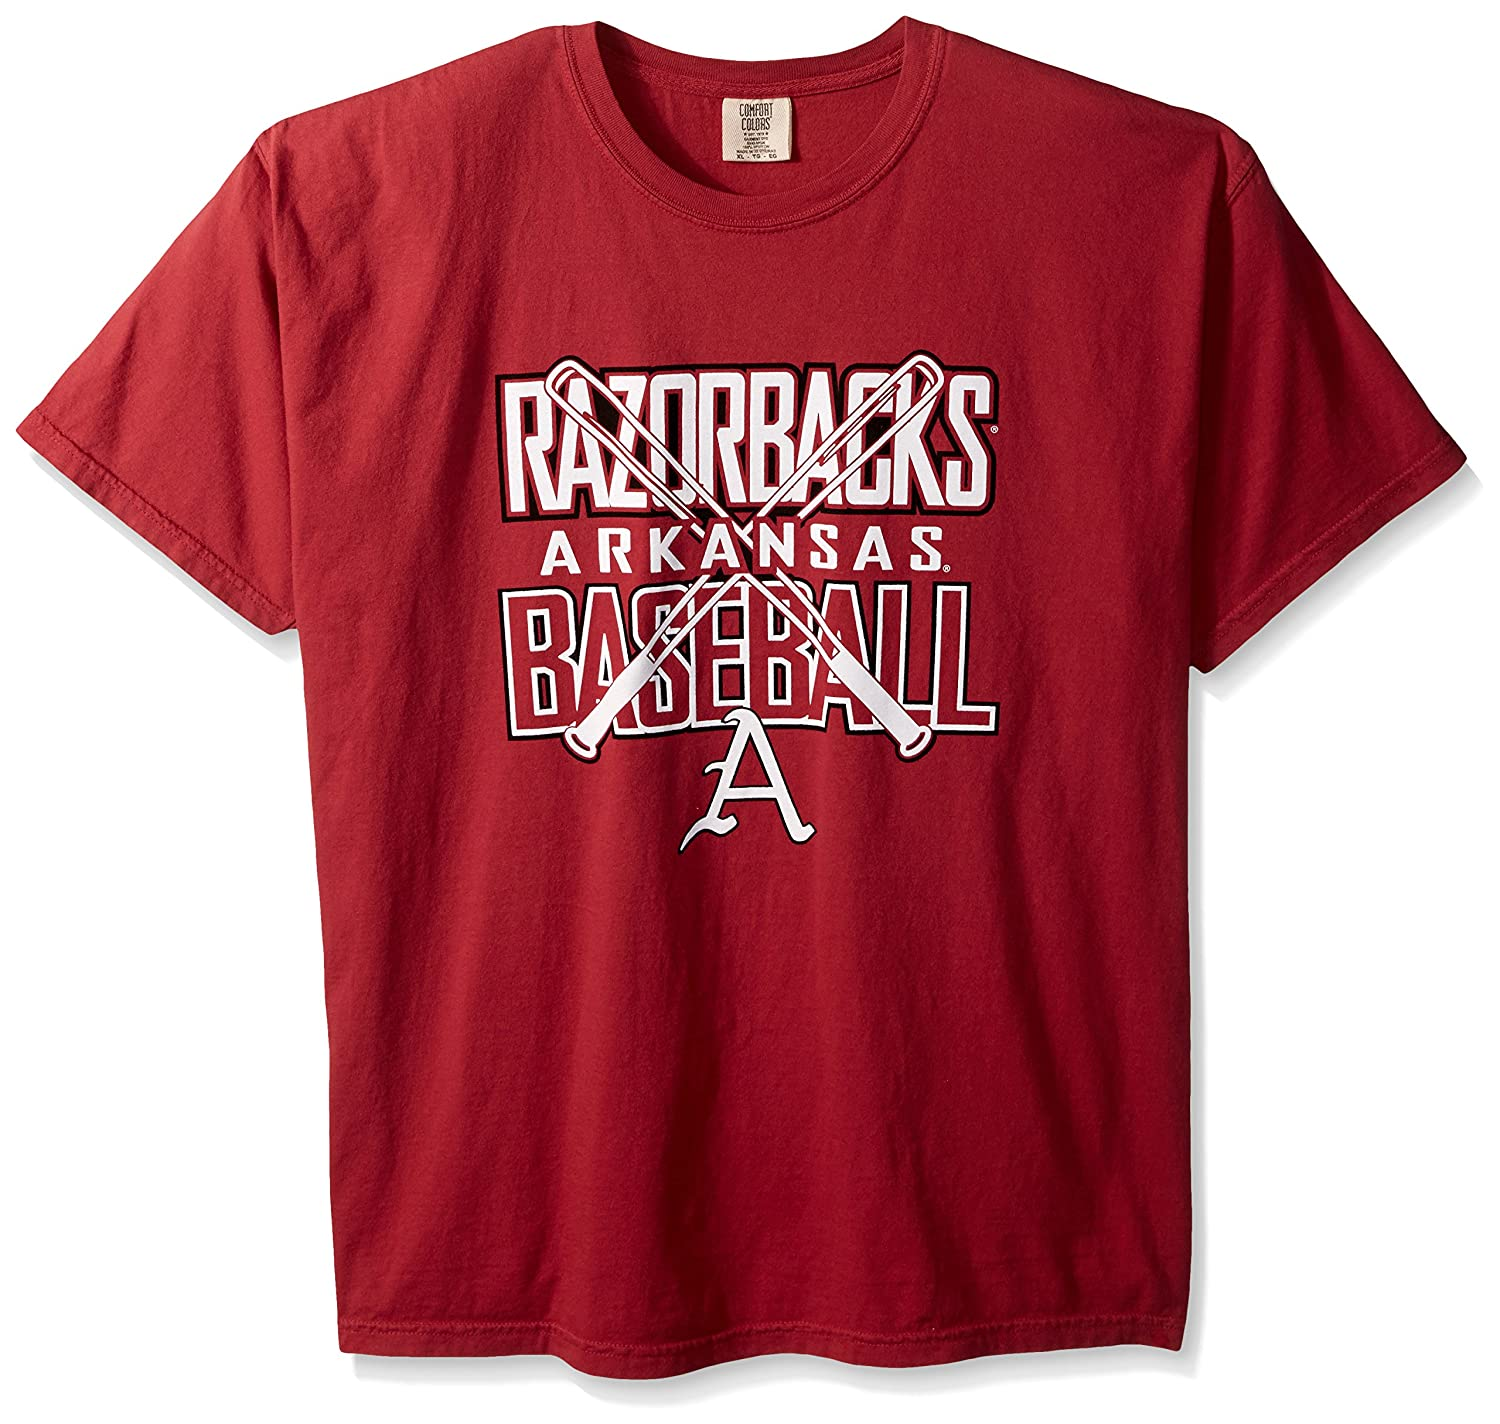 大量入荷 NCAA Razorbacks Arkansas Razorbacks NCAA Baseball Bats半袖快適カラーTシャツ、Chili Arkansas、Chili B01N550MUG, 【オンラインショップ】:cd69048f --- a0267596.xsph.ru